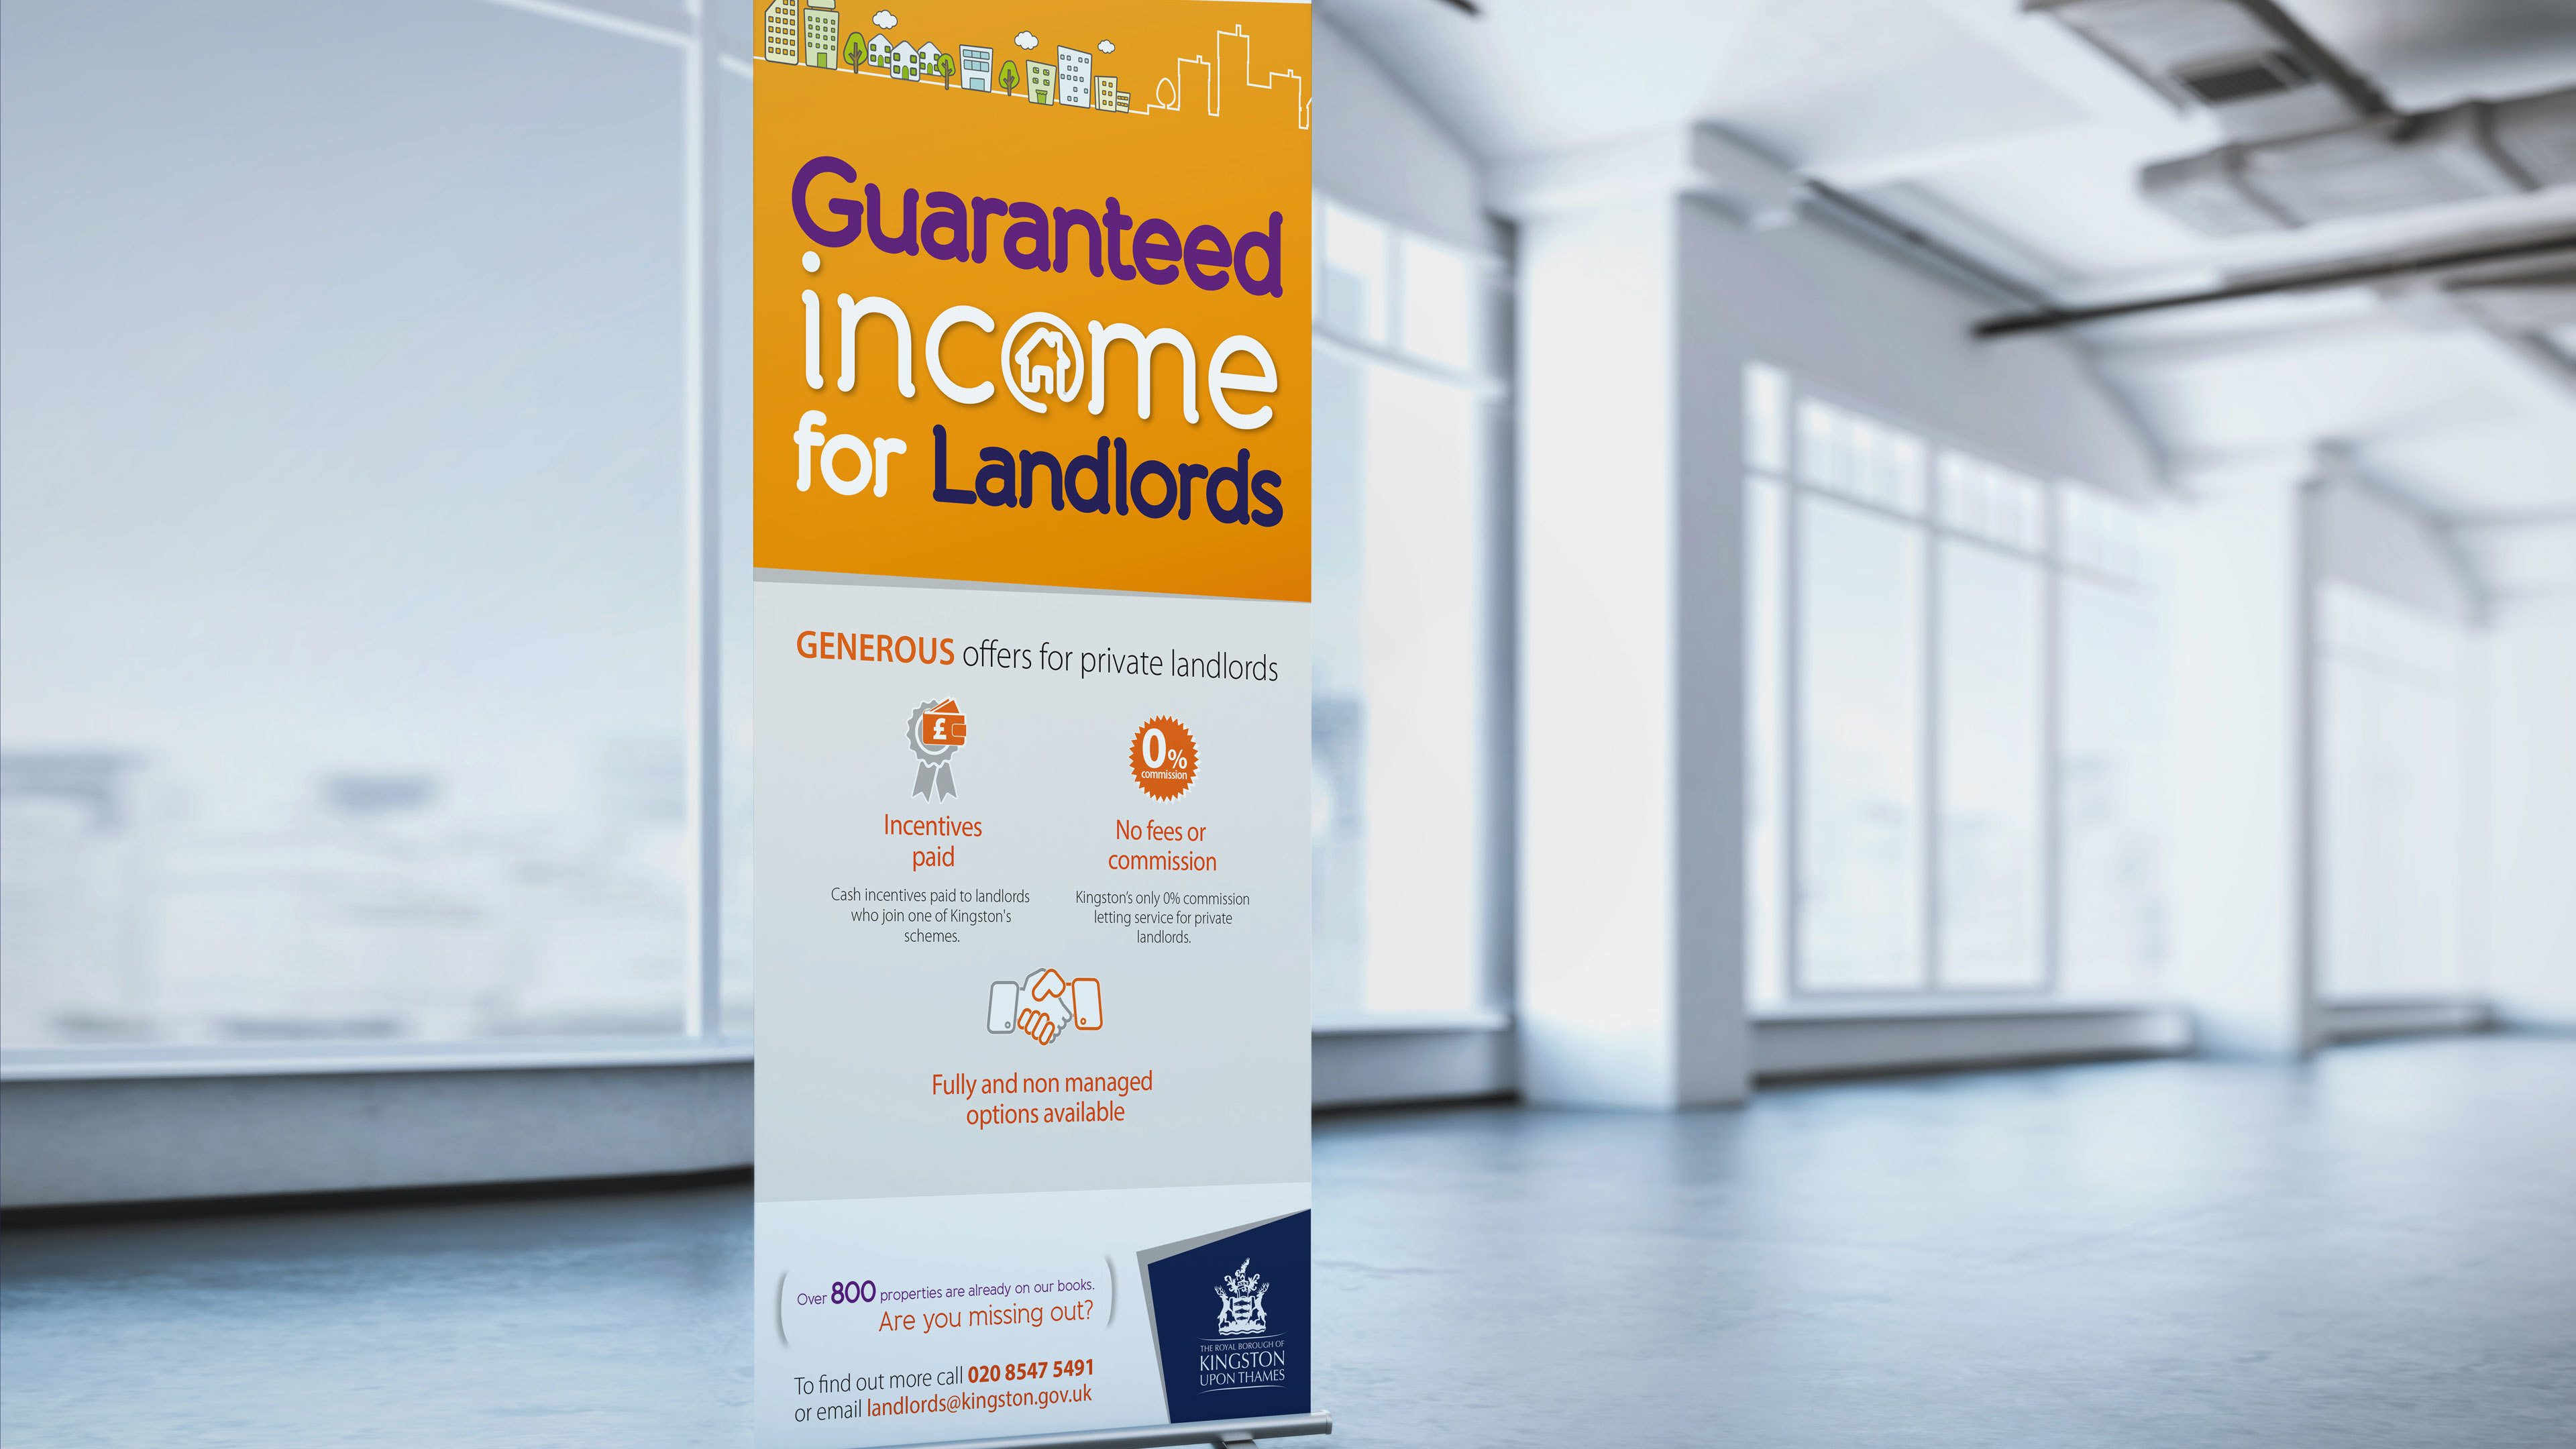 Landlords-roller-banner-on-background.jpg